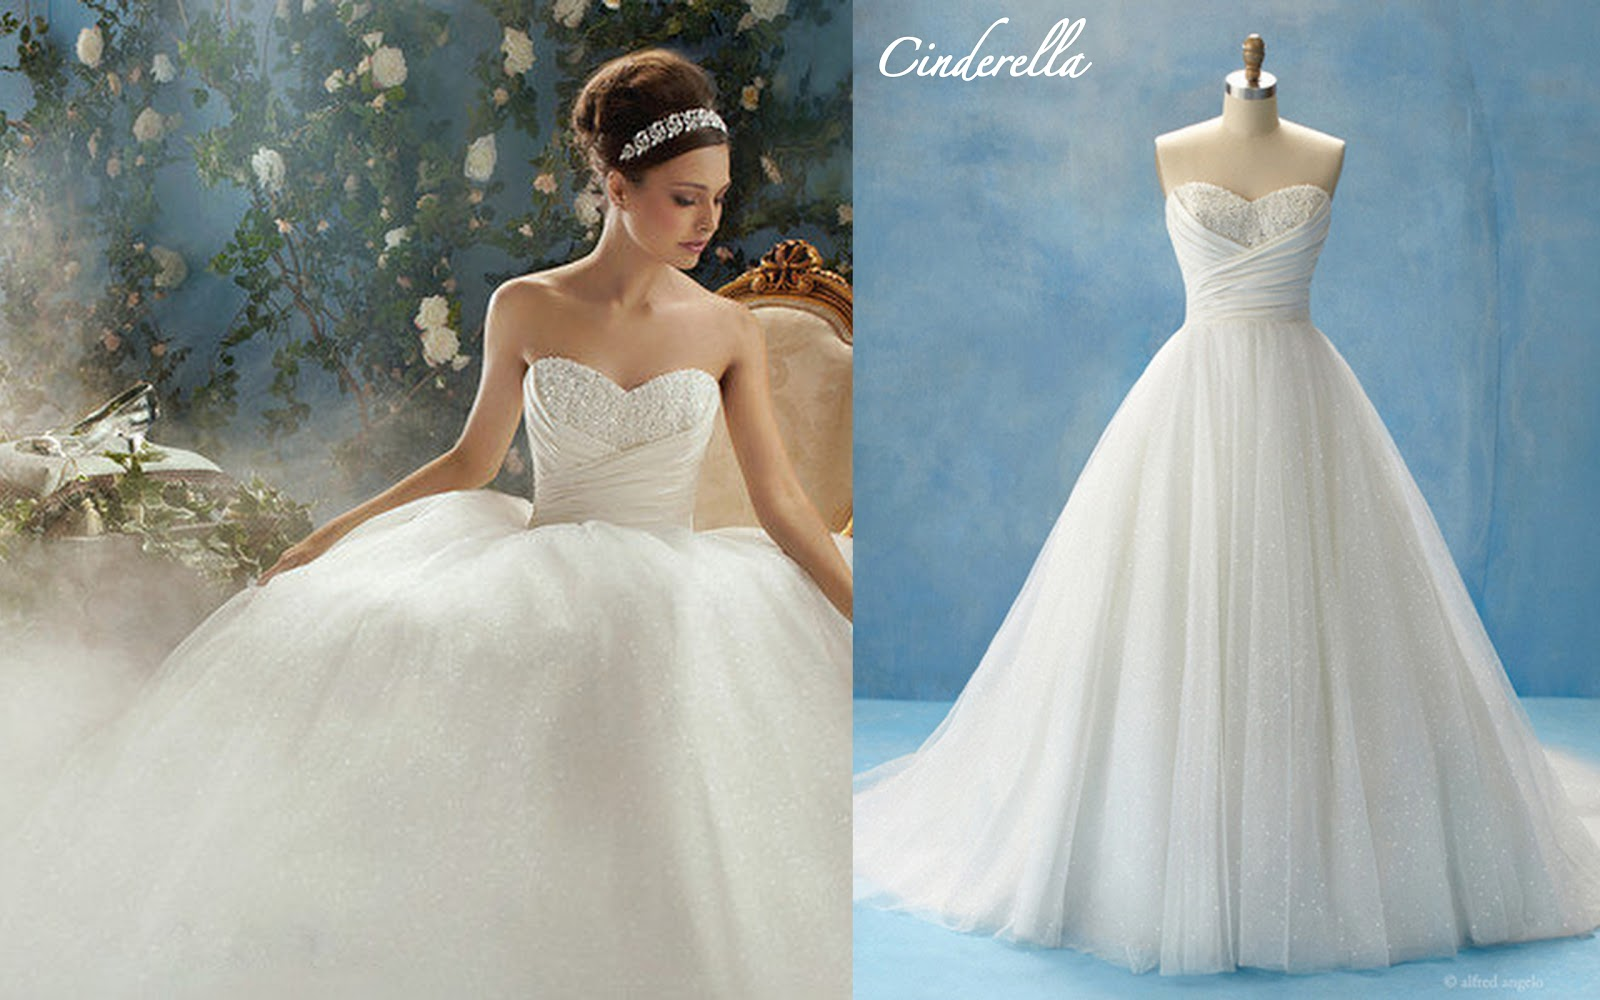 Frills and thrills fairy tale wedding gowns by alfred angelo for Cinderella inspired wedding dress